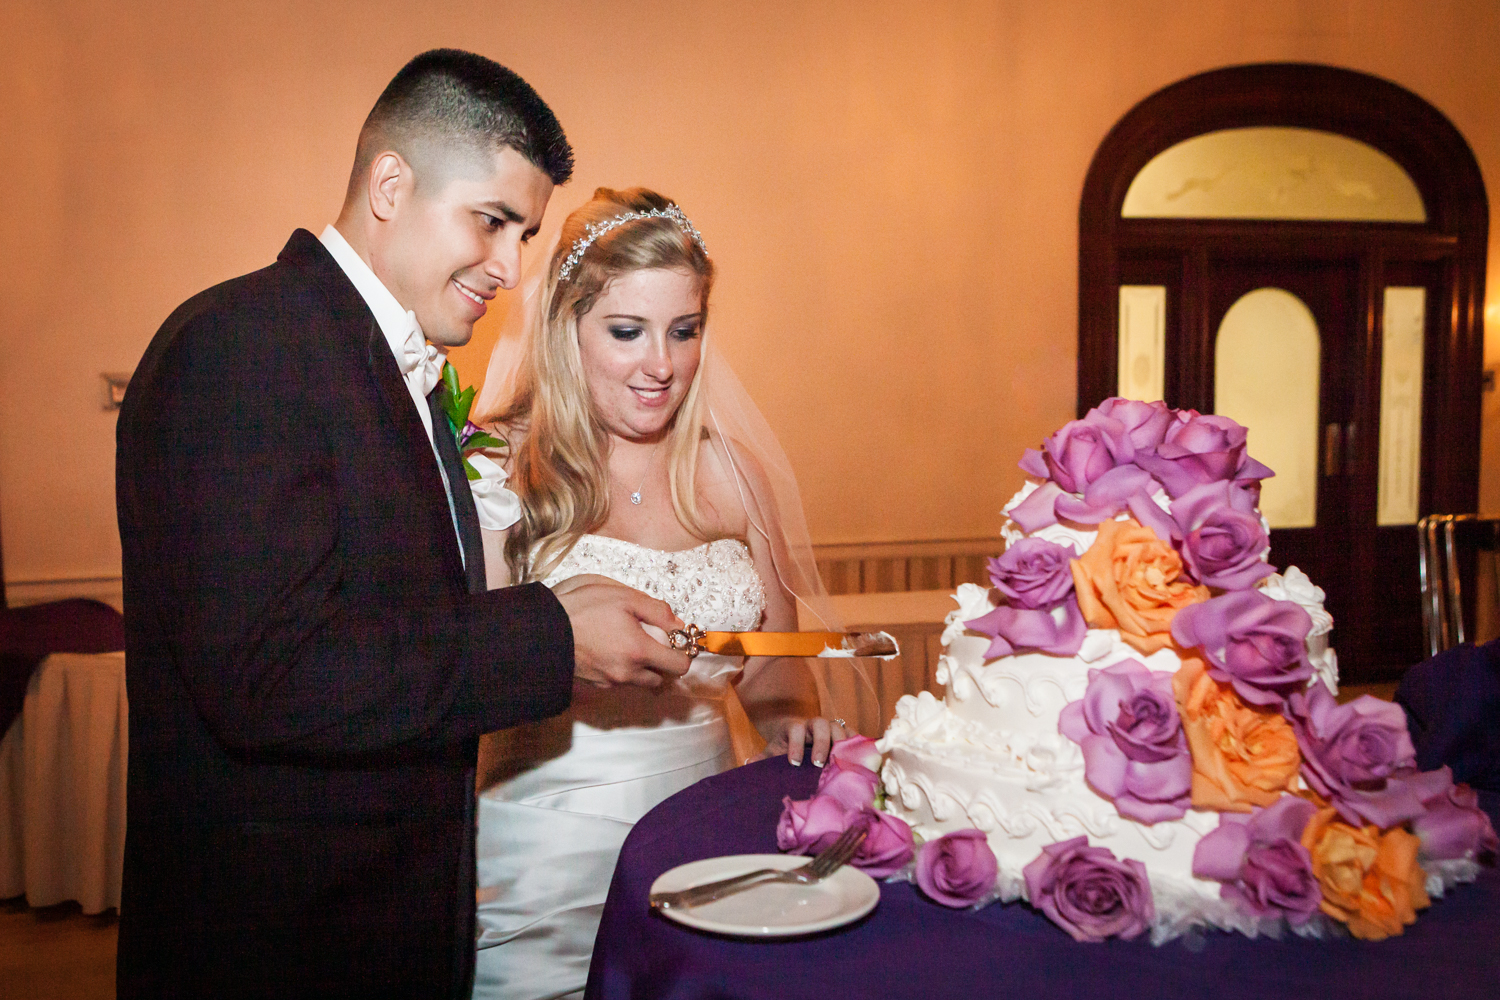 Bride and groom cutting cake at a Fort Hamilton Community Center wedding